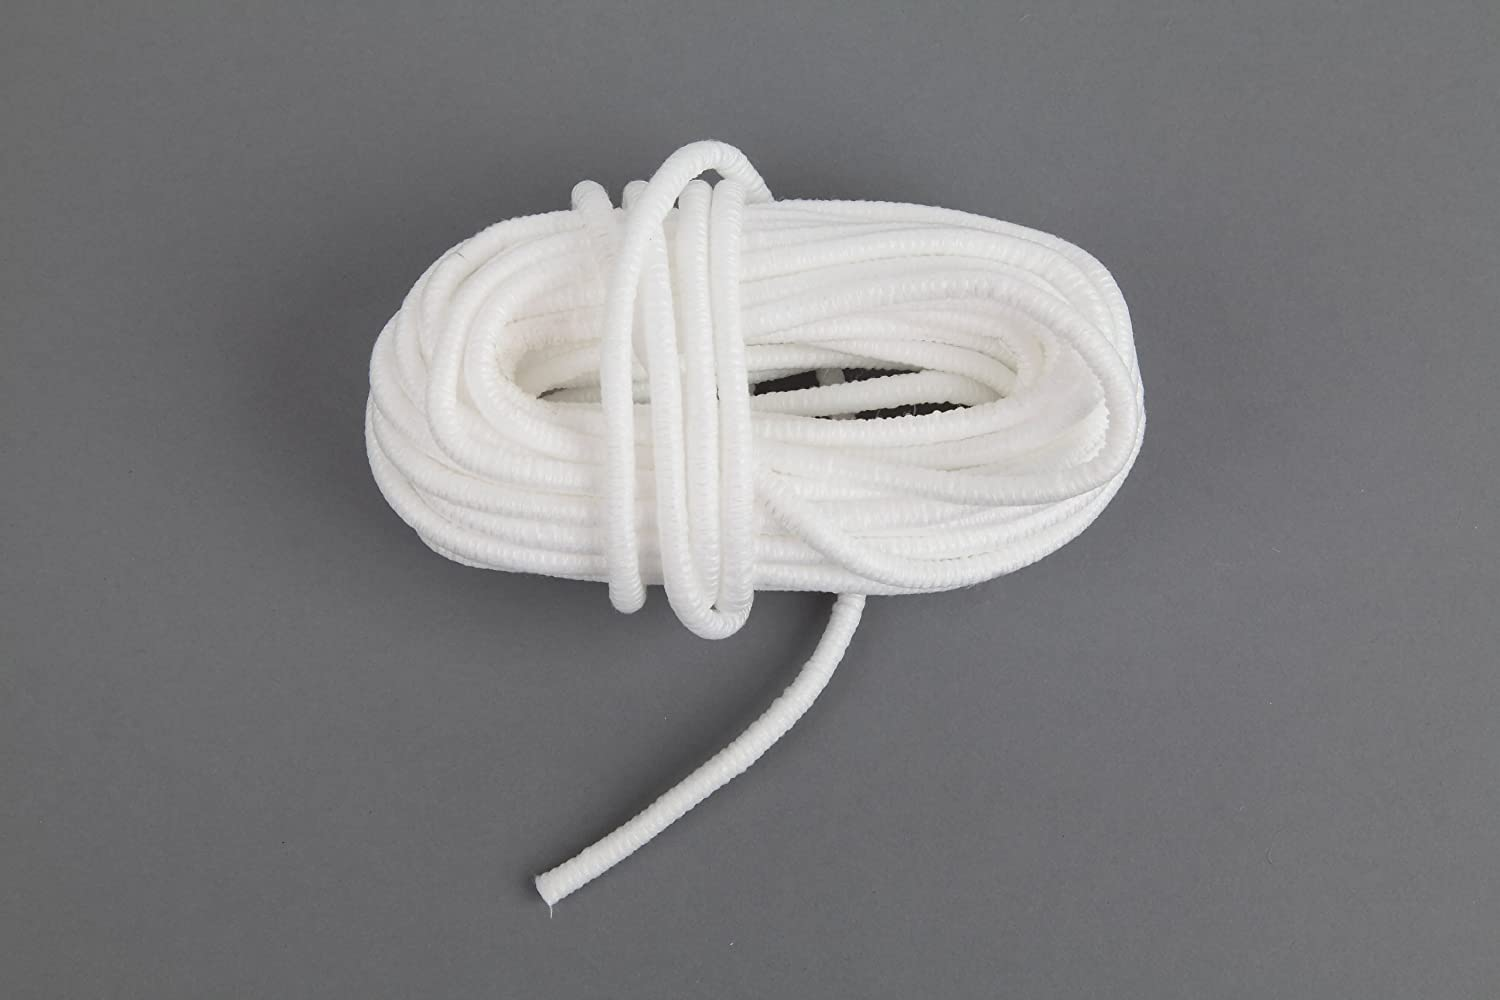 50 MTRS PIPING CORD 5MM WASHABLE UPHOLSTERY SUPPLIES